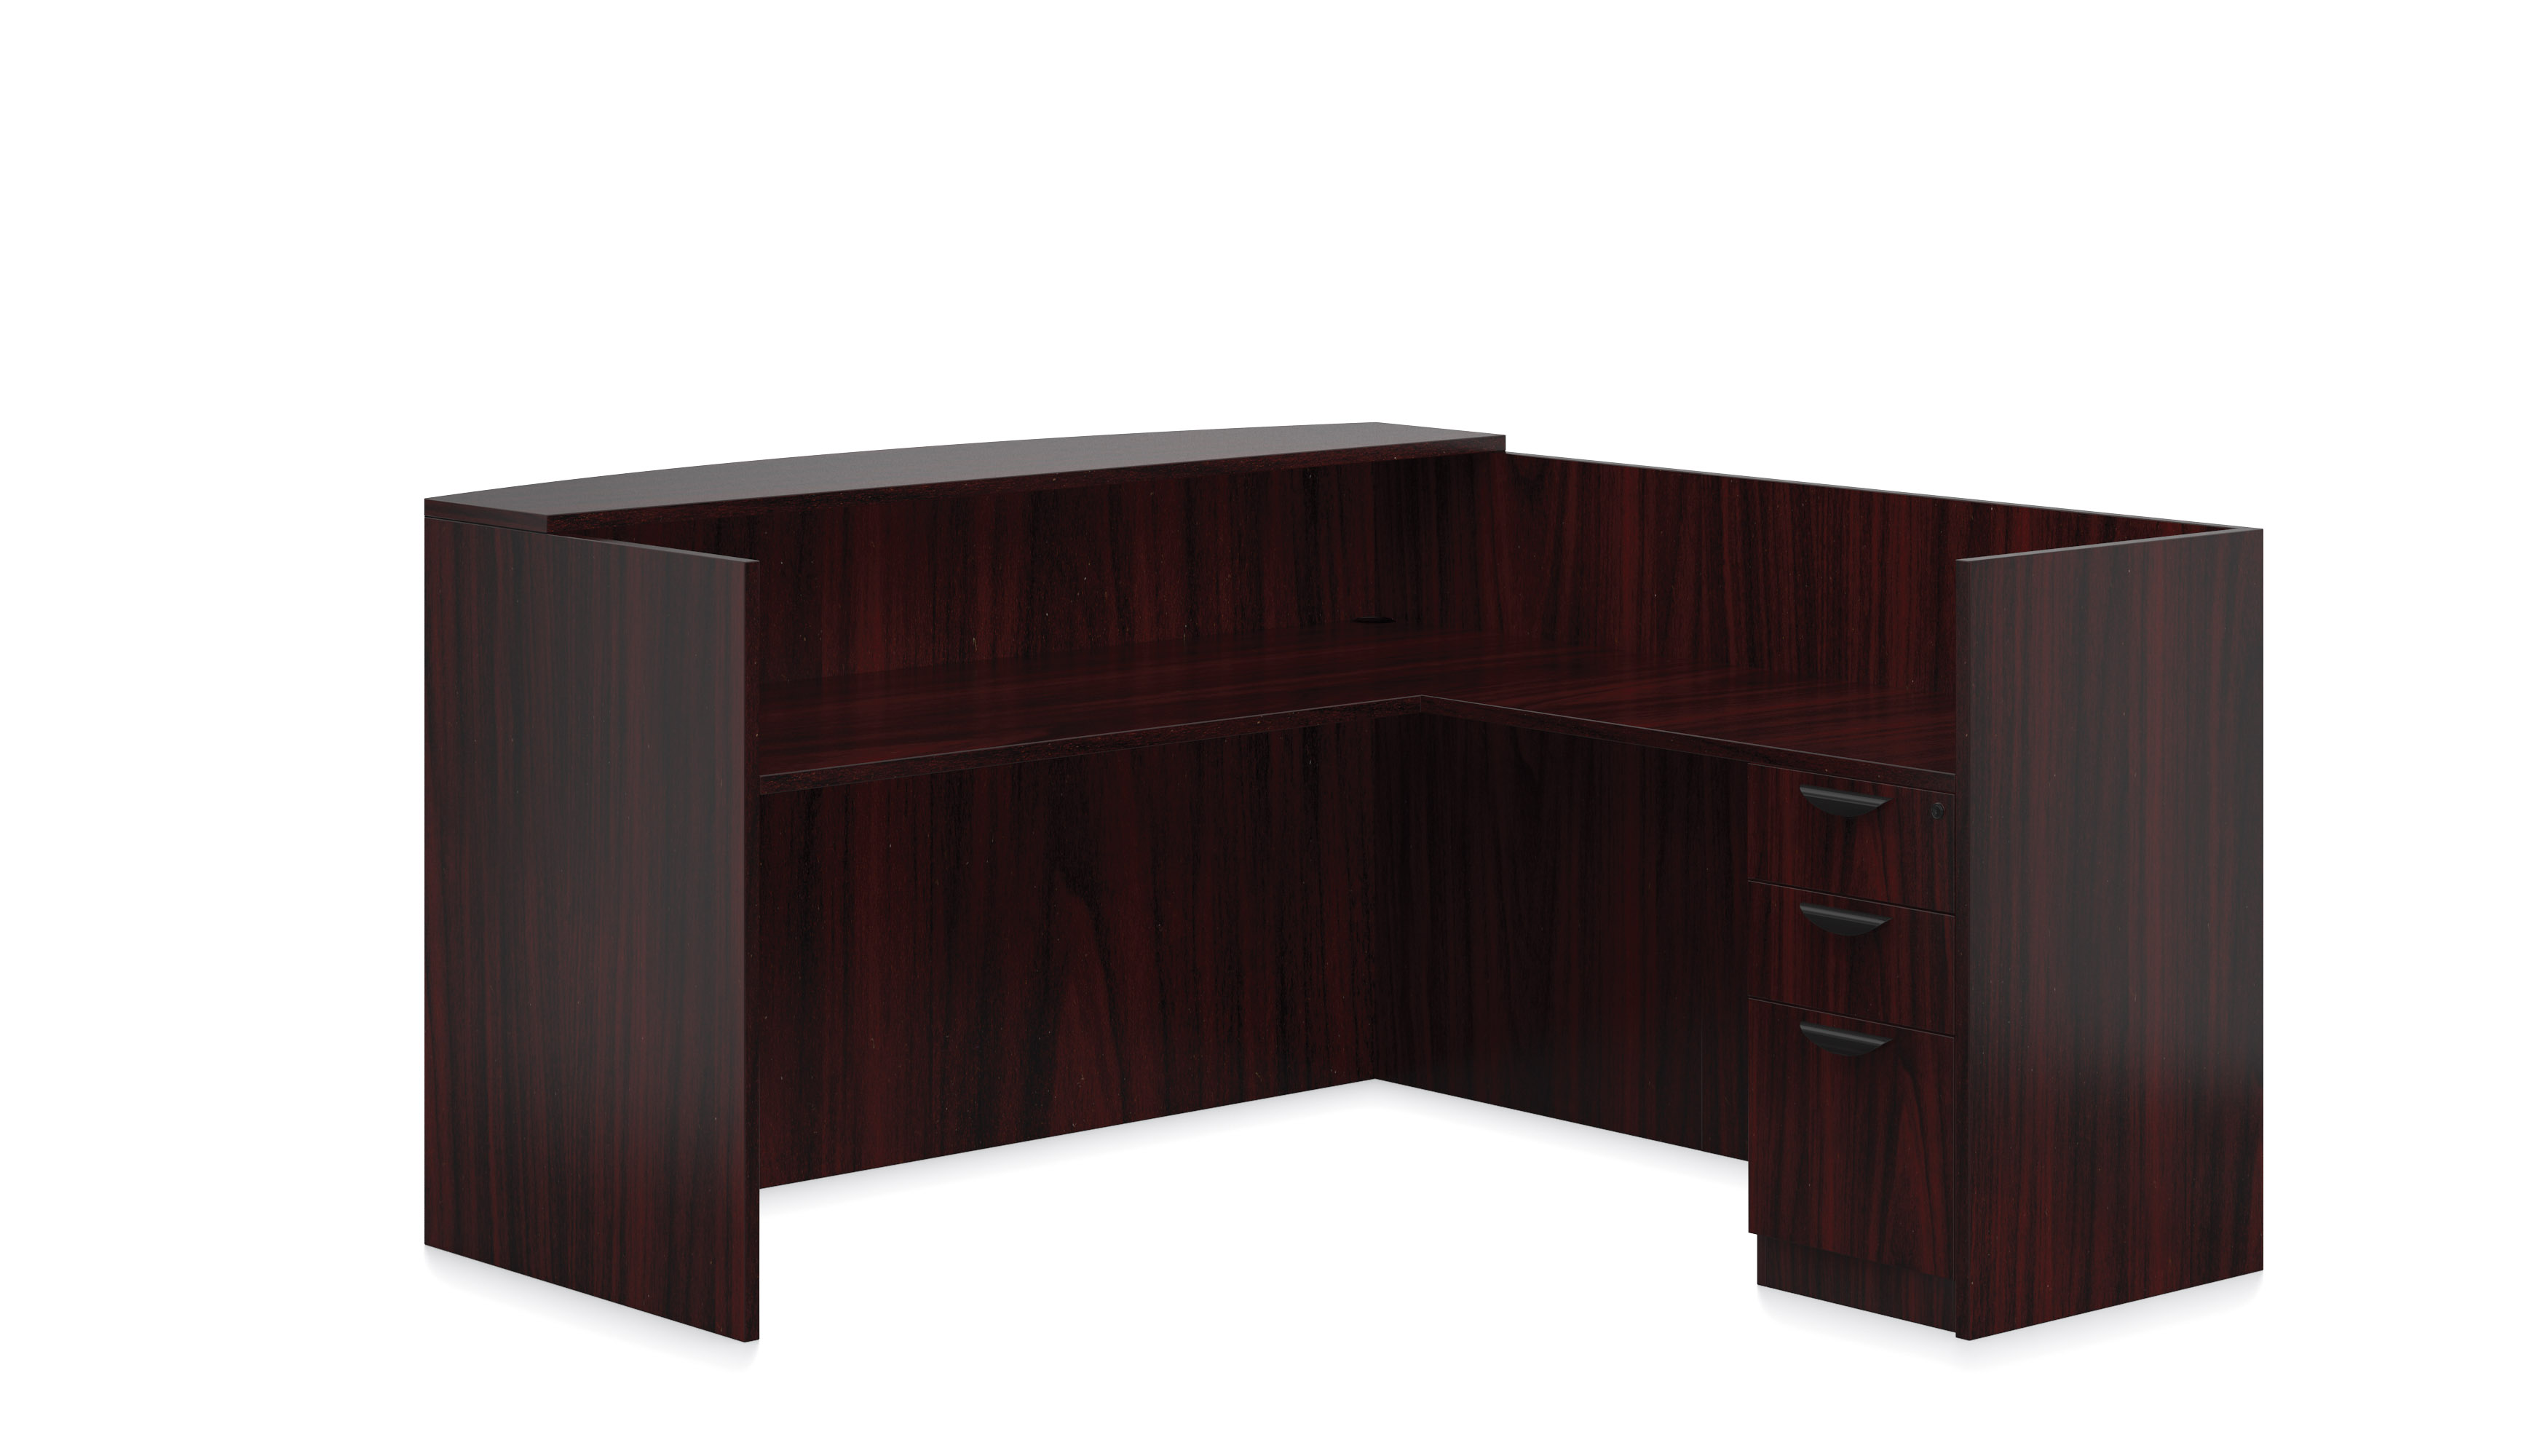 Superior Affordable Lobby Furniture From OTG   Shown American Mahogany Woodgrain